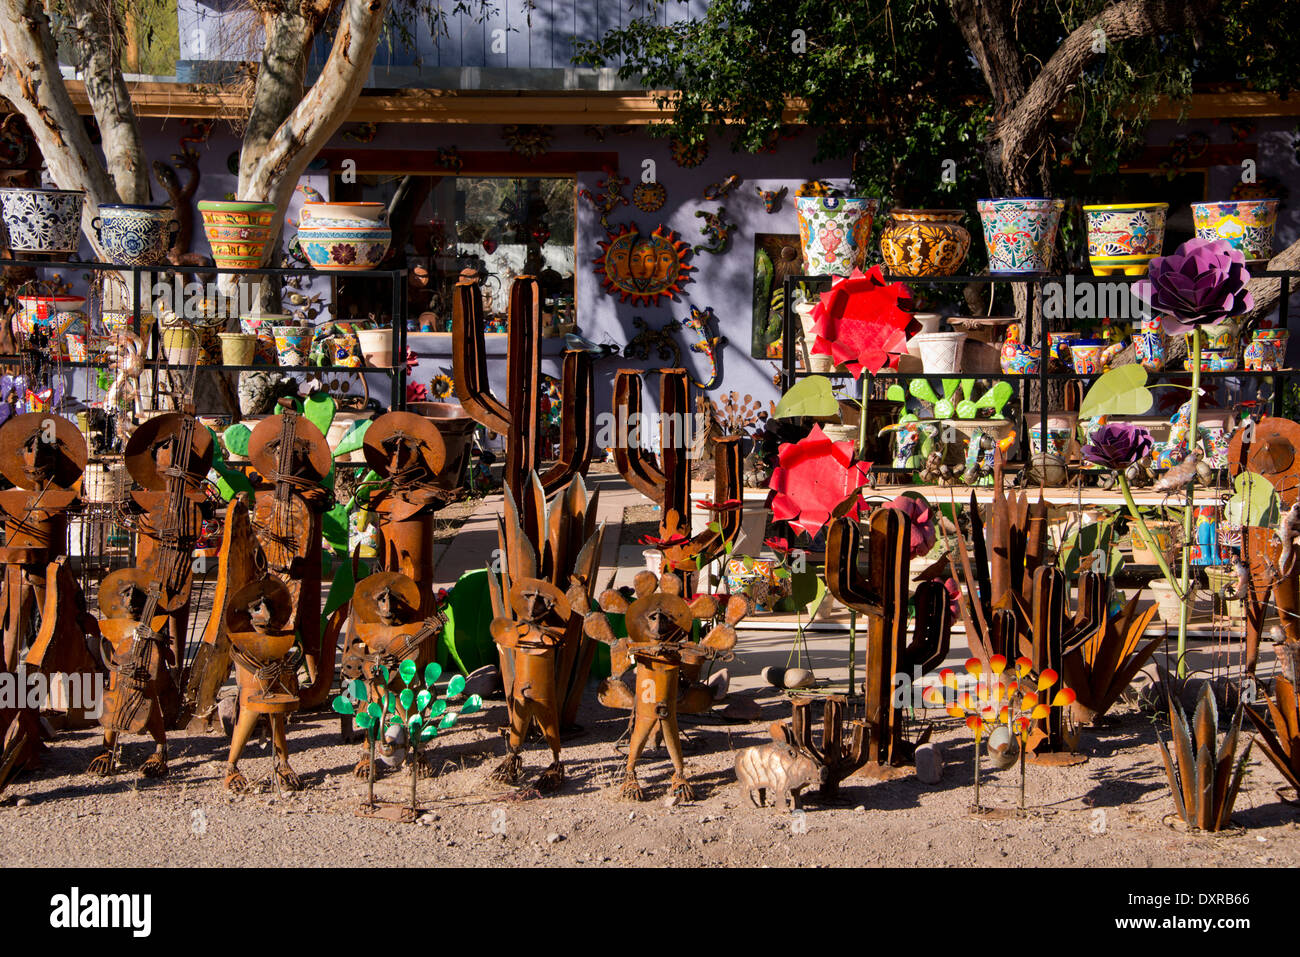 Arizona, Tucson, Tubac. Colorful metal yard and garden sculpture ...